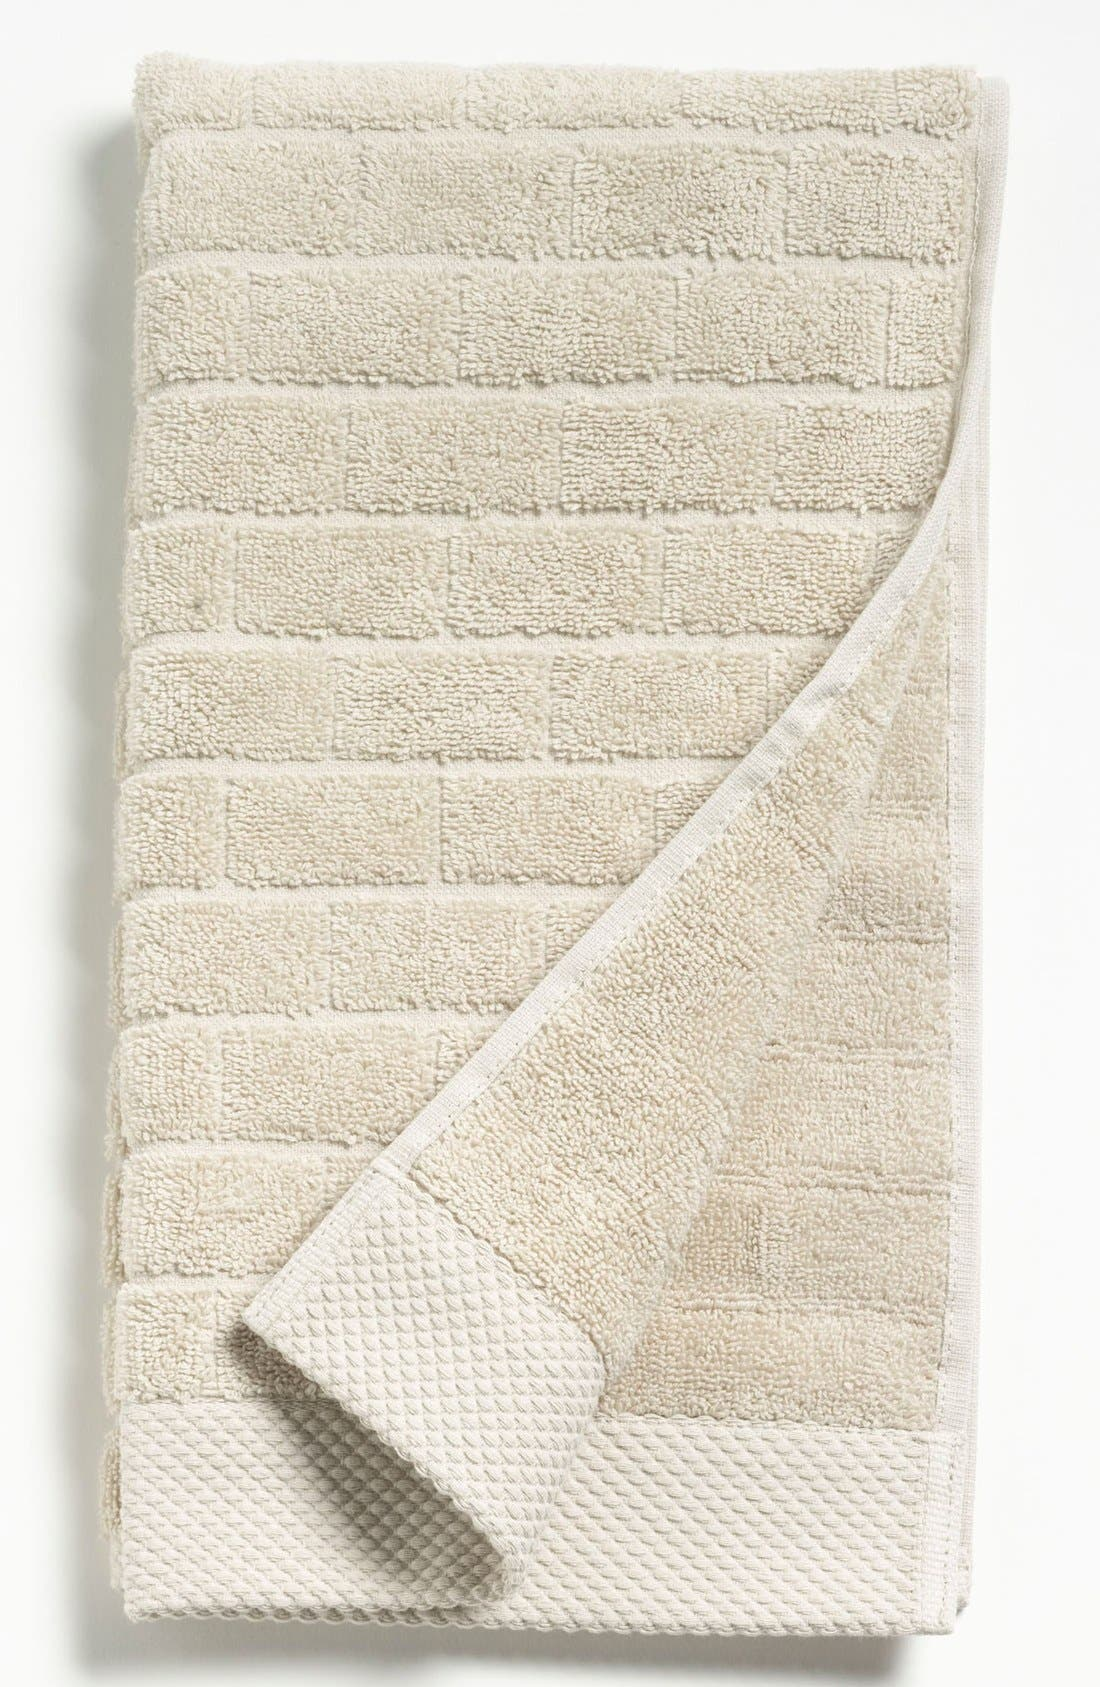 Main Image - Waterworks Studio 'Subway' Combed Cotton Hand Towel (Online Only)